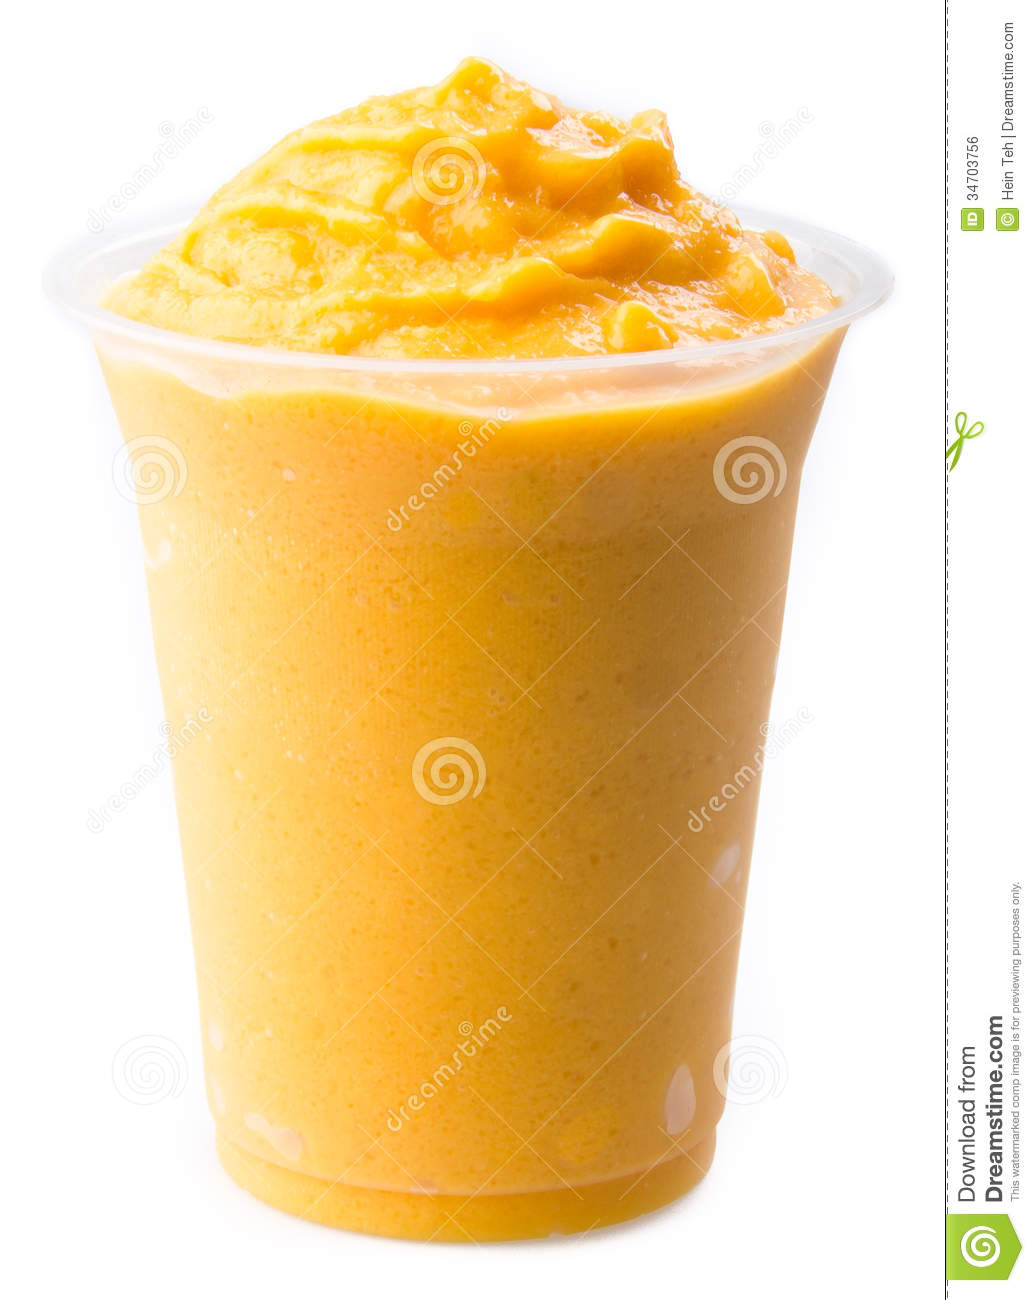 http://thumbs.dreamstime.com/z/mango-yogurt-milk-shake-isolated-white-background-34703756.jpg